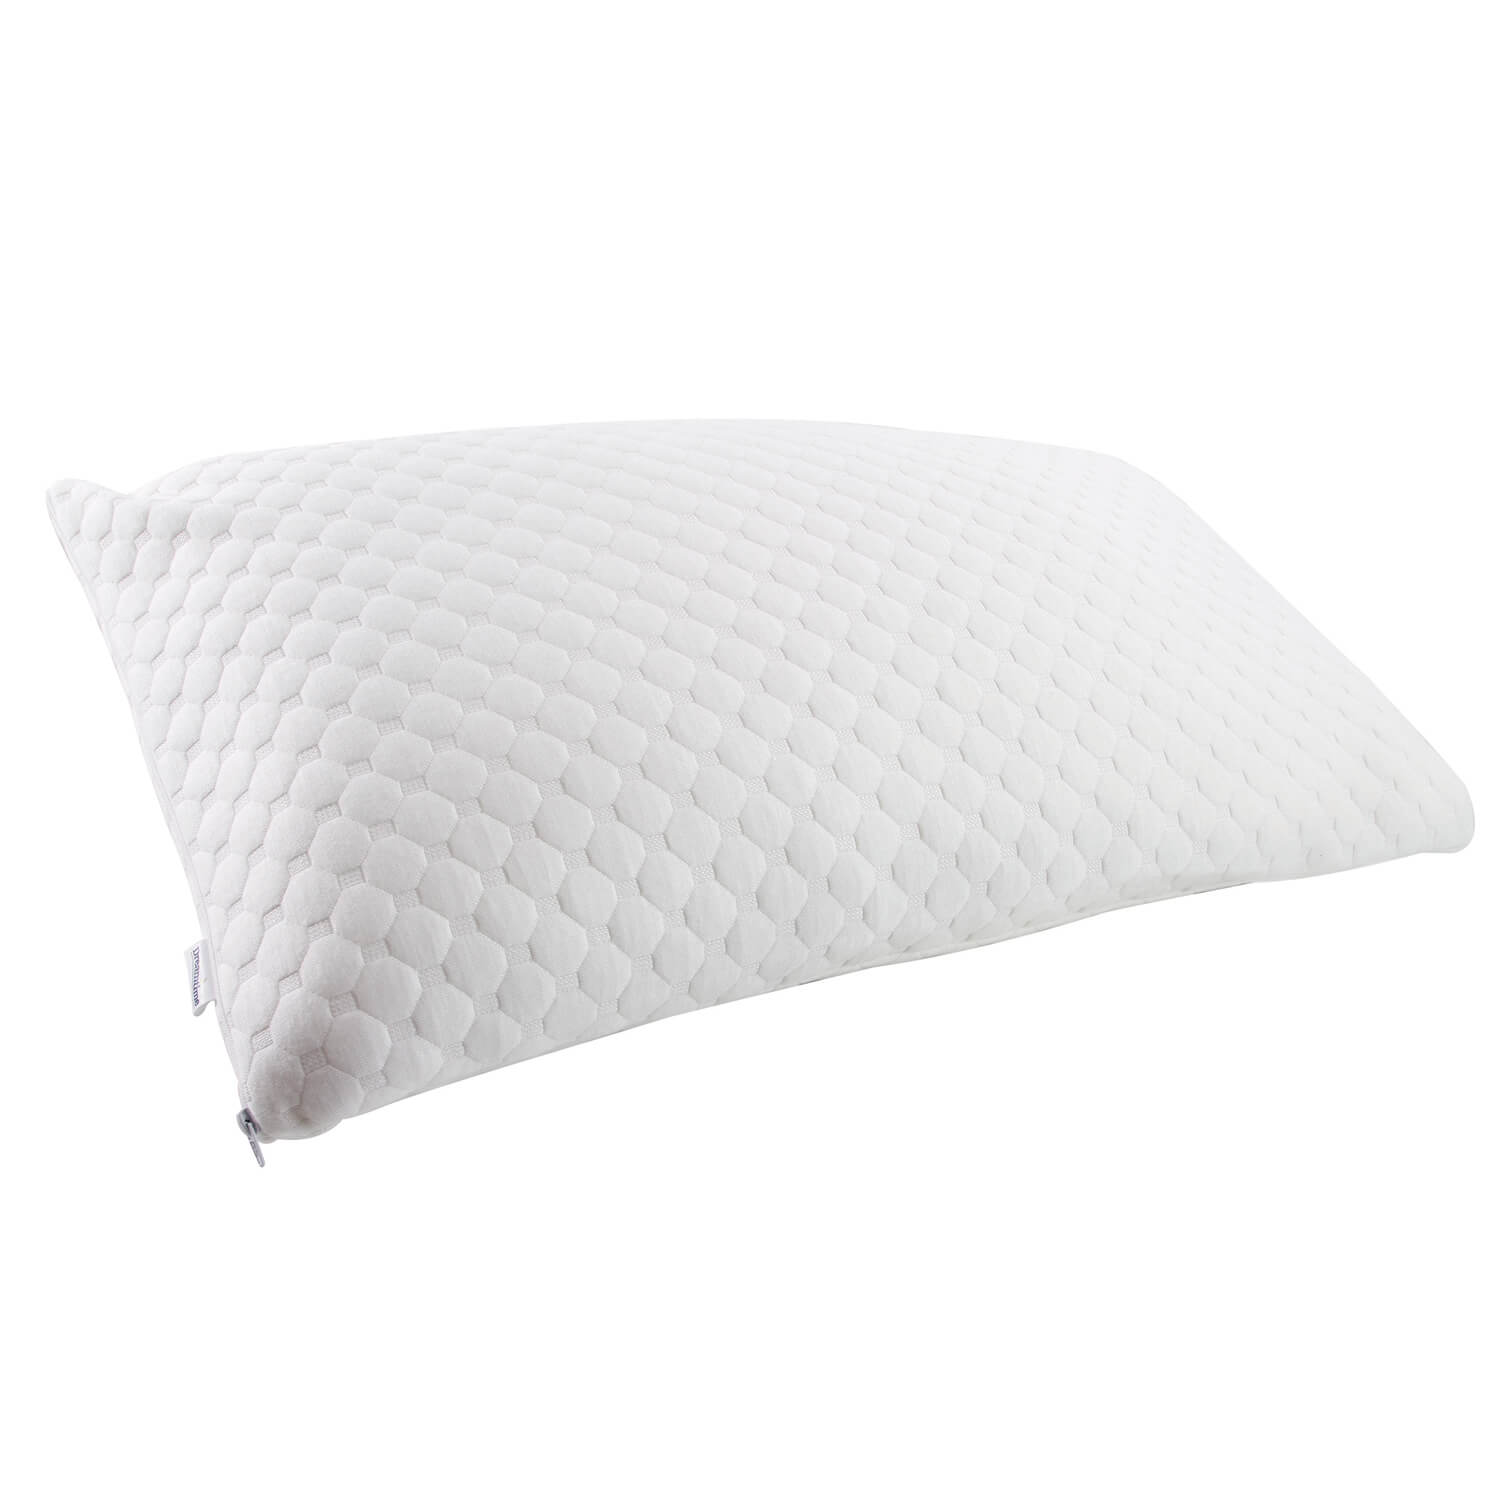 foam memory pillow bamboo comfortech medium derived cover